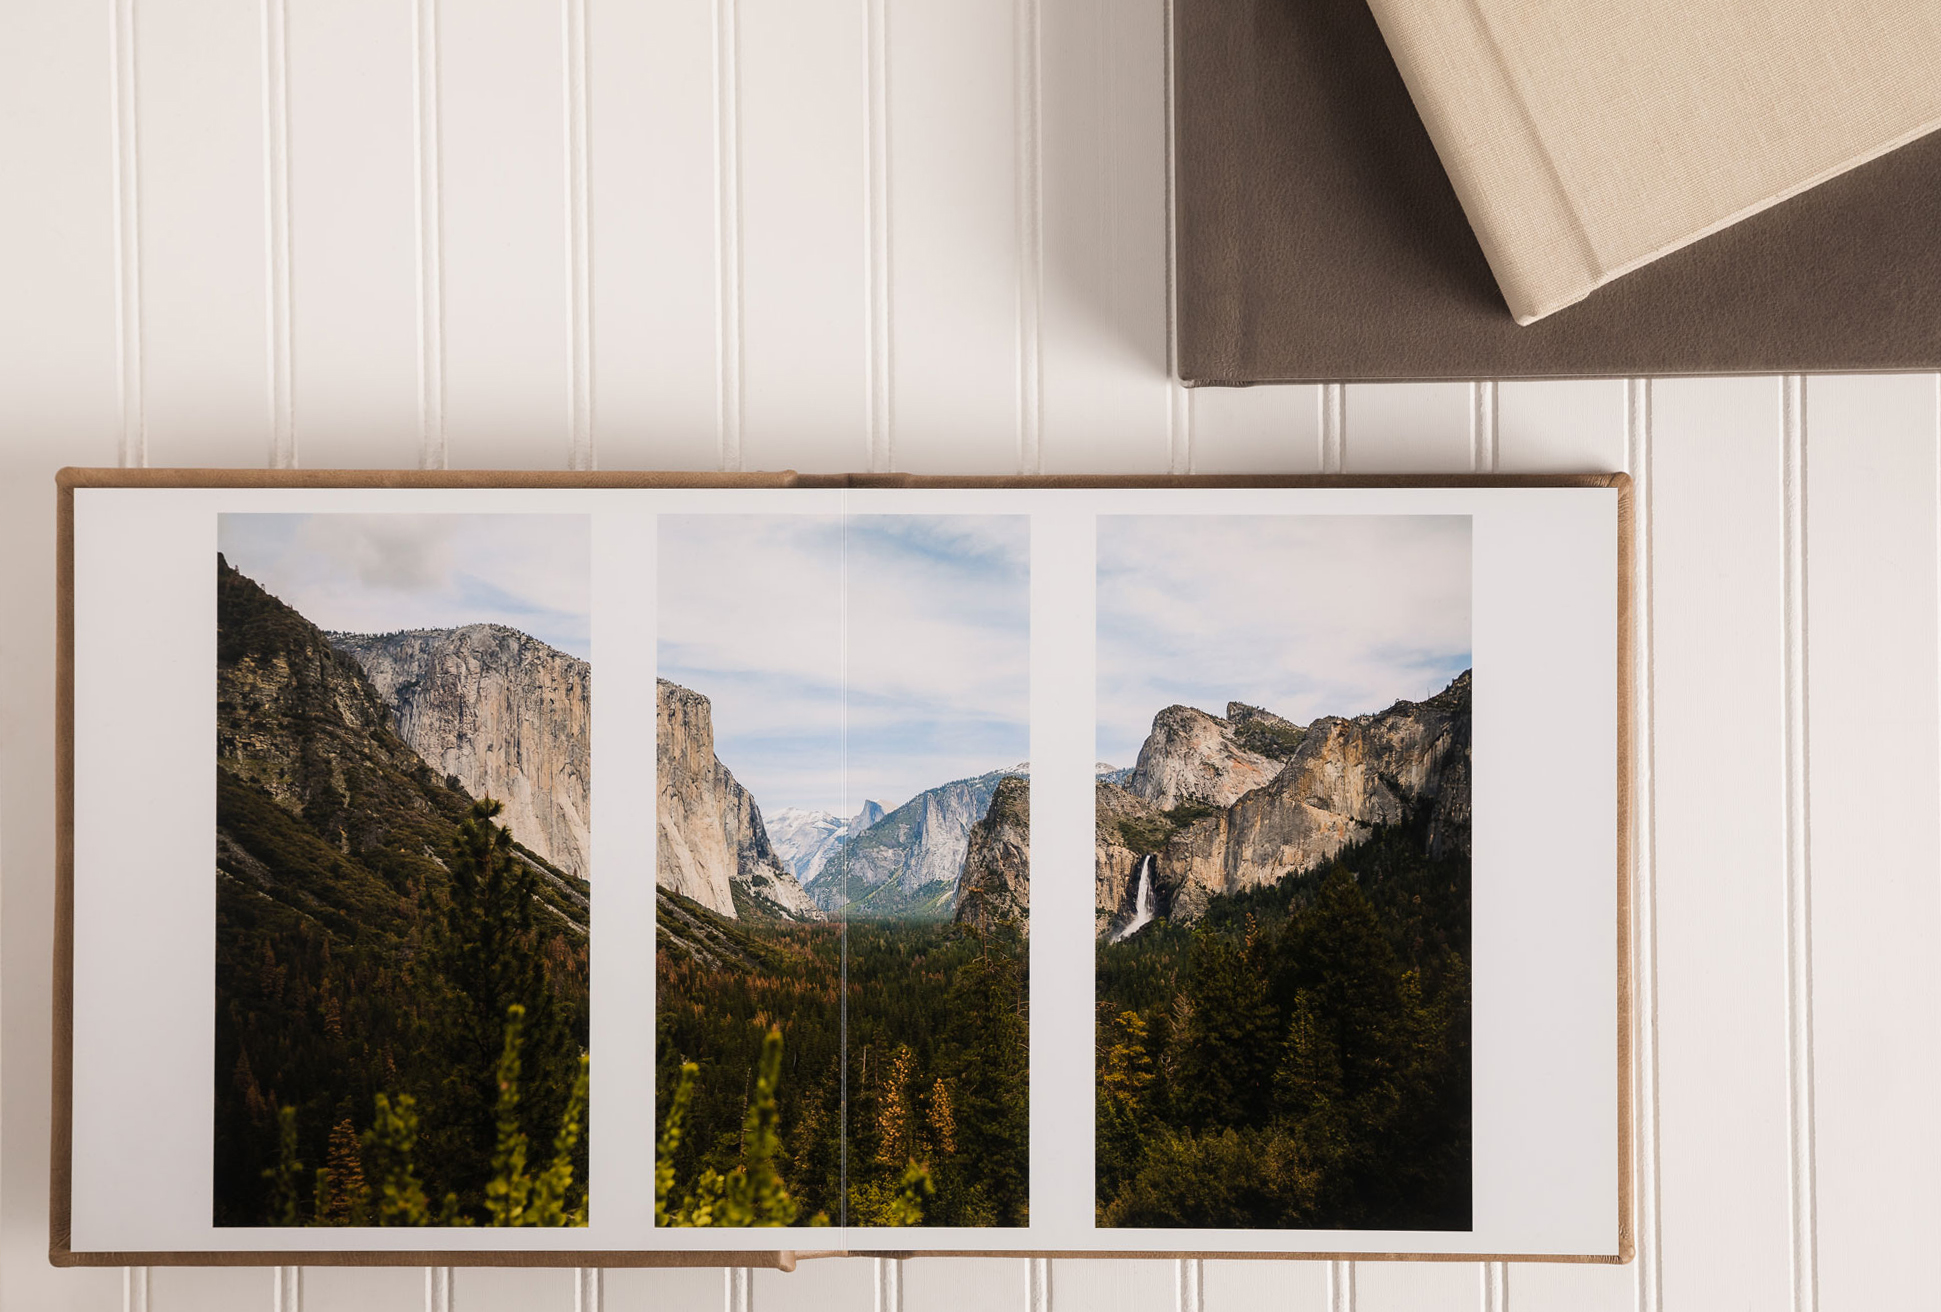 Increase print sales for your photography business through storytelling